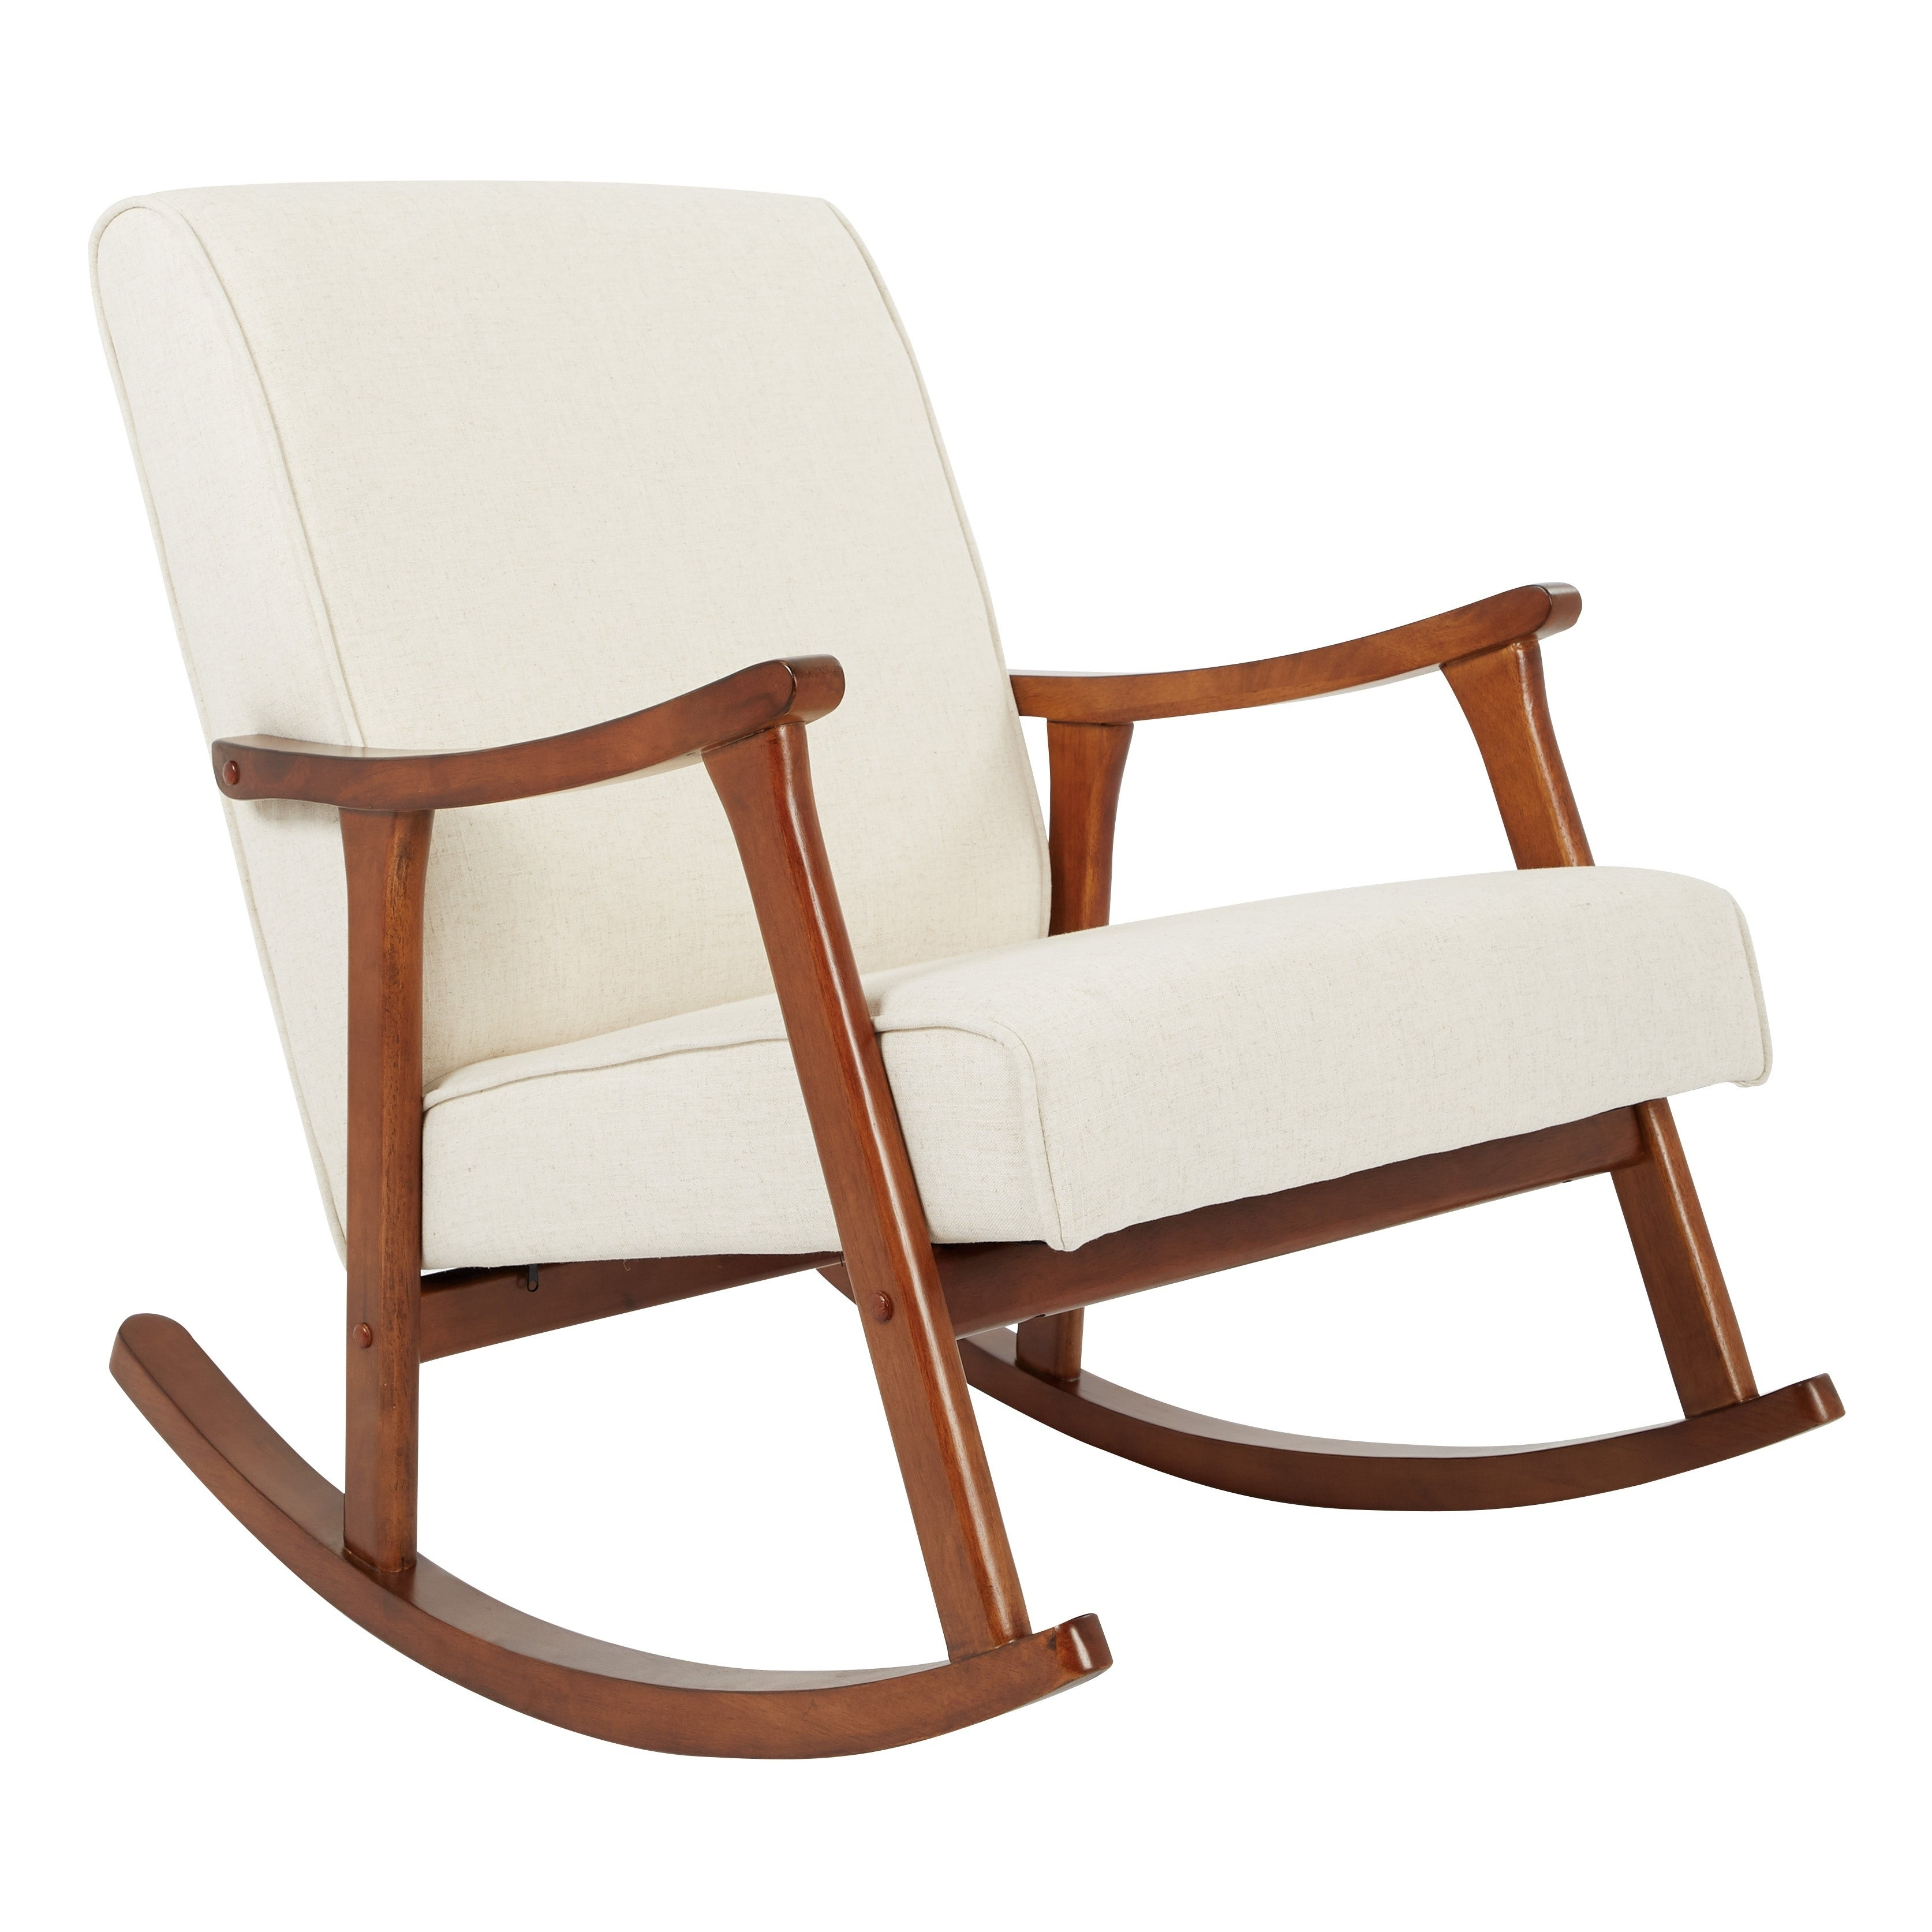 Inspiration about Rocking Chairs, Rustic Living Room Chairs | Shop Online At For Ethel Country White Rocking Chairs (#12 of 20)